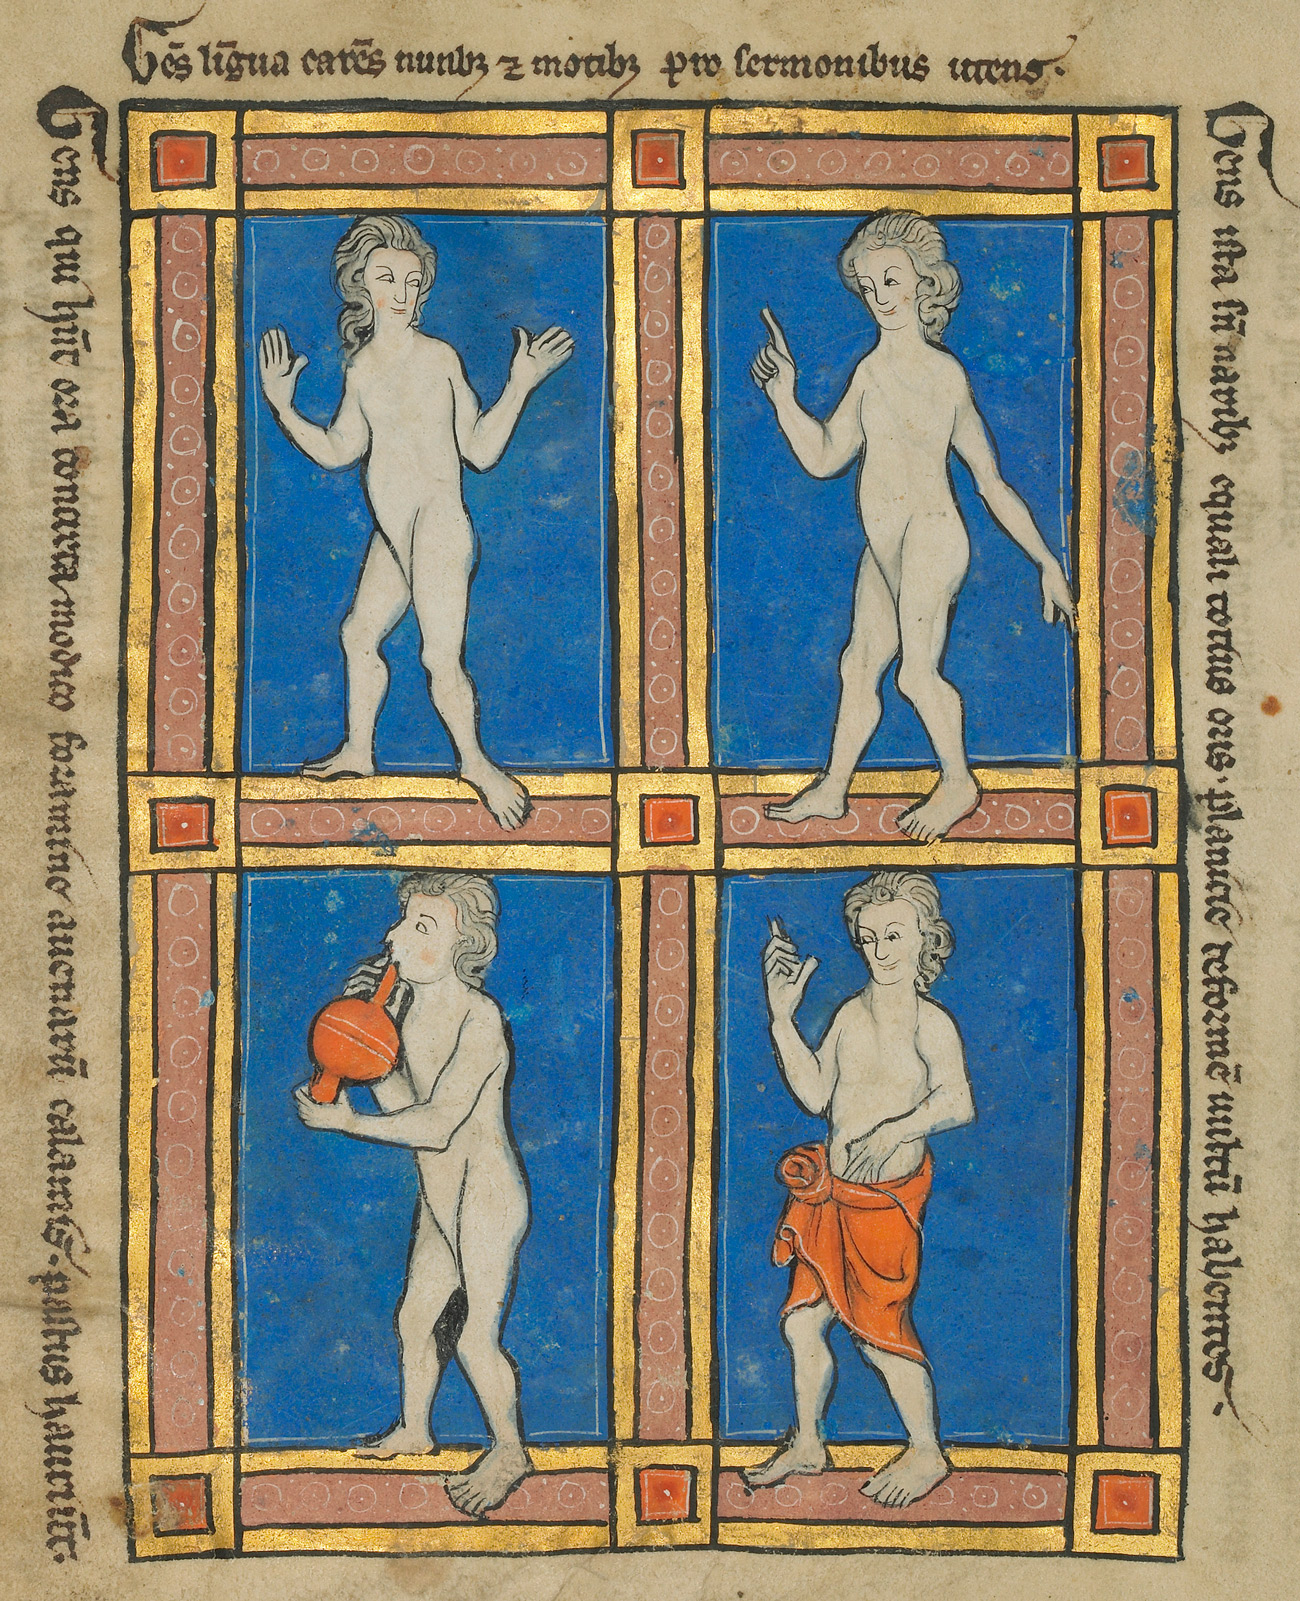 Four figures appear in four framed quadrants. The top two are making gestures, the bottom left is drinking from a vessel and the bottom right is gesturing and wearing a cloth around his waist